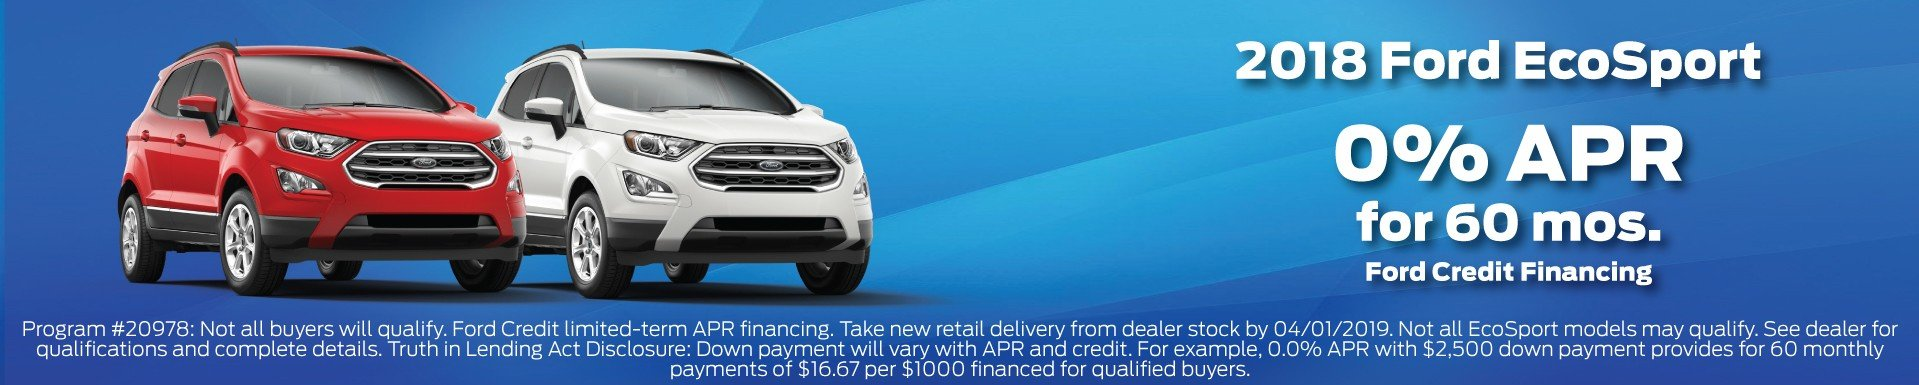 2018 Ford EcoSport Offer 3-2019